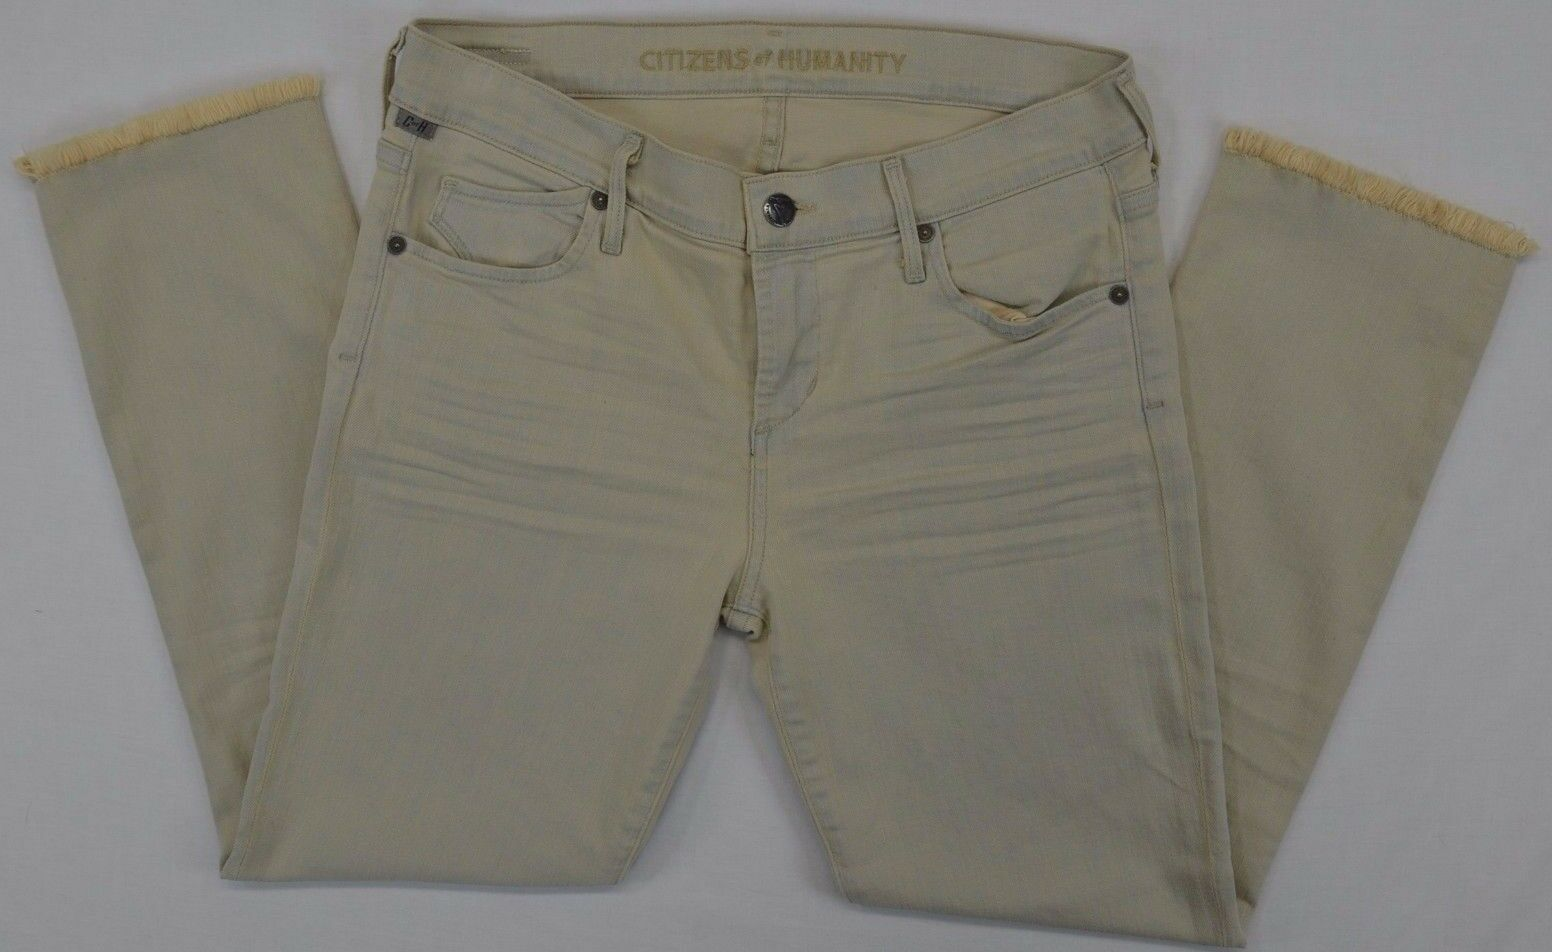 Citizens Of Humanity Cropped Cut-Off Womens Light Denim Jeans size 29